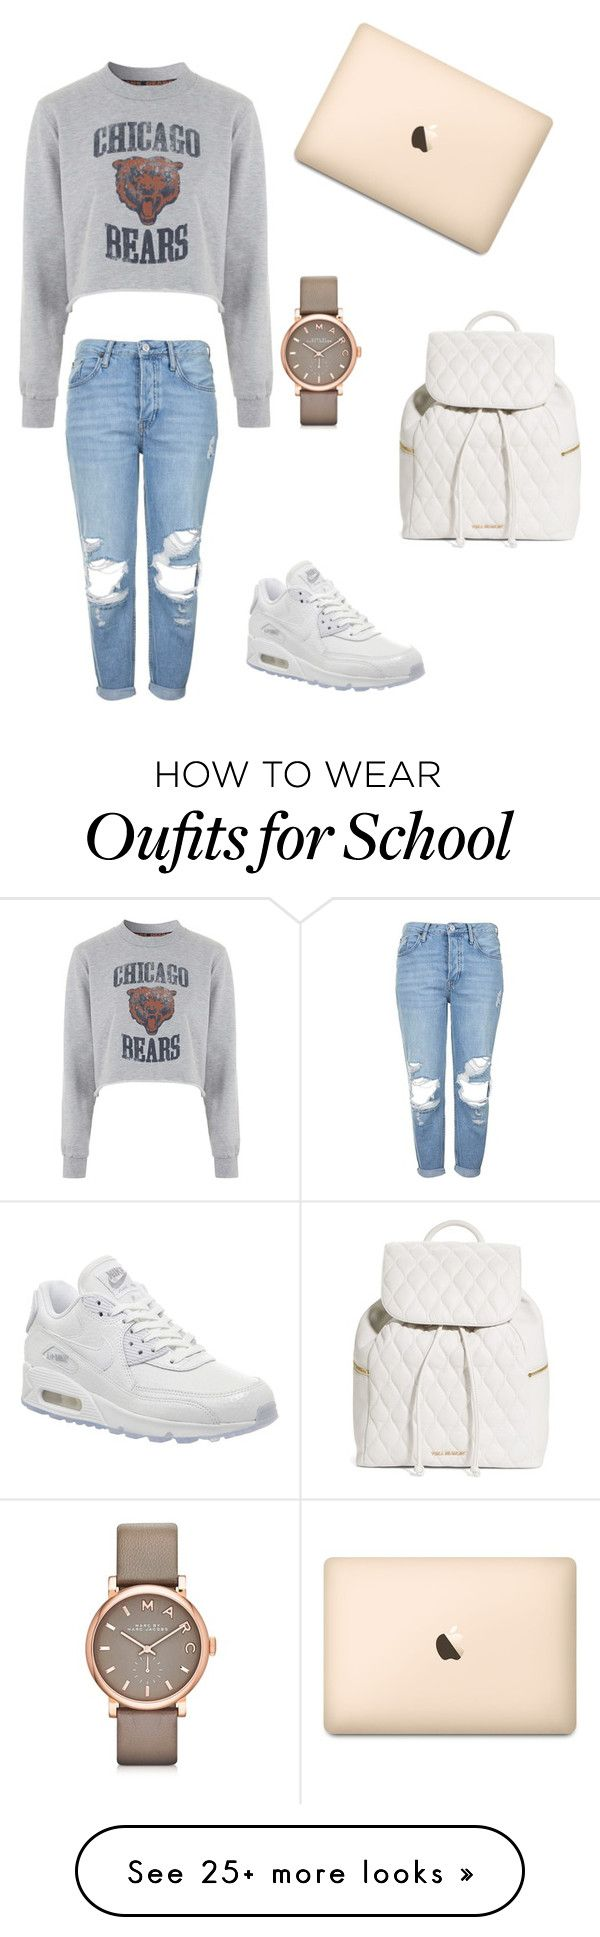 """""""School fit!"""" by missamani on Polyvore featuring Tee and Cake, Topshop, Marc by Marc Jacobs, NIKE and Vera Bradley"""